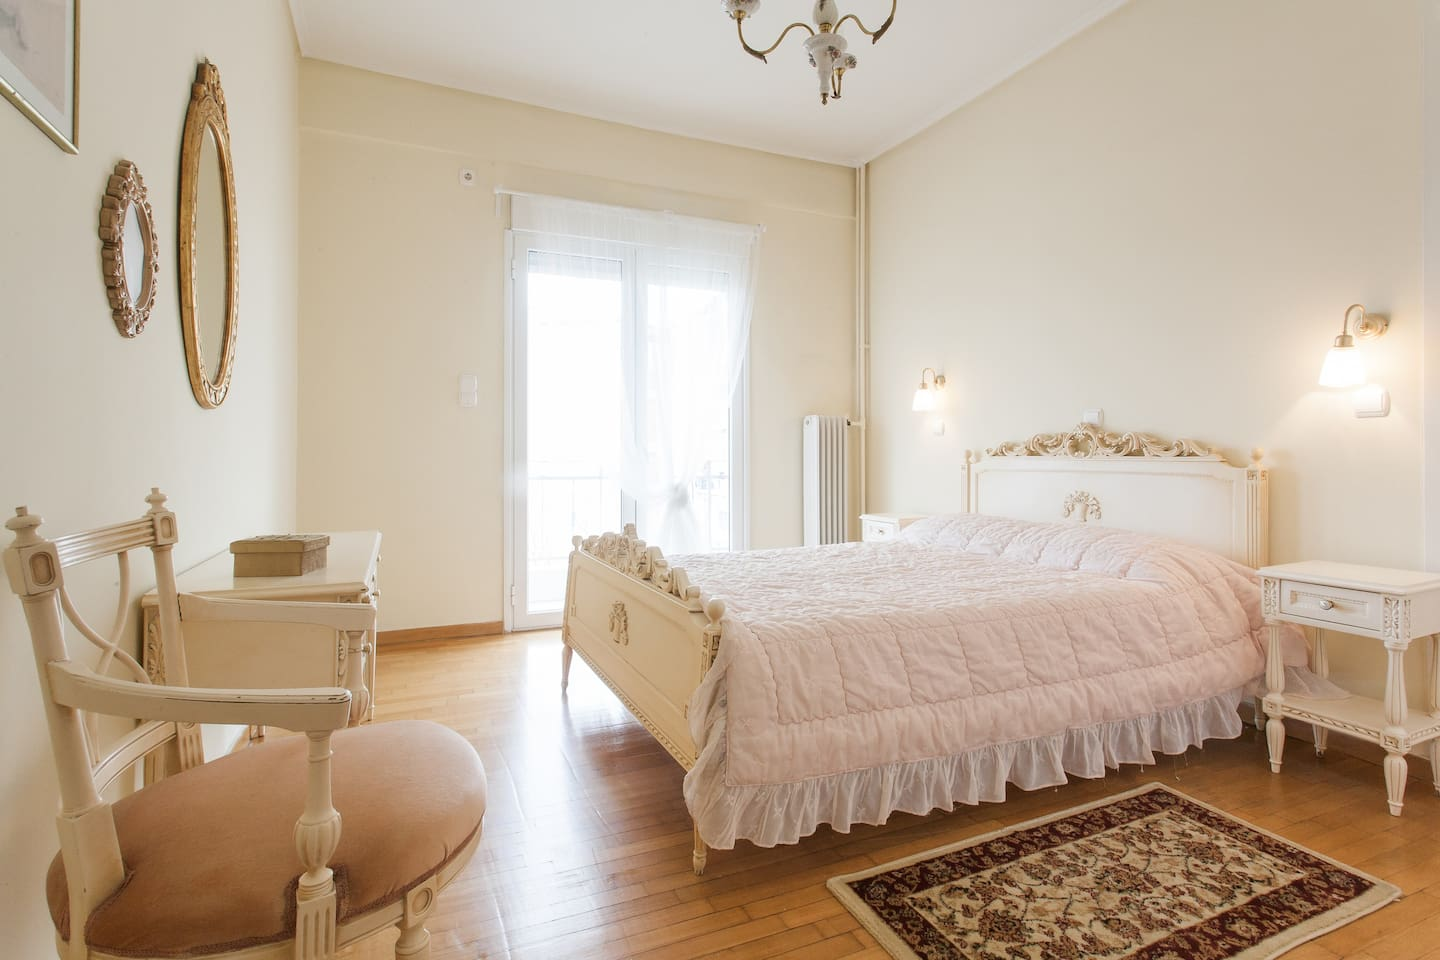 Sunny bedroom with comfortable bed